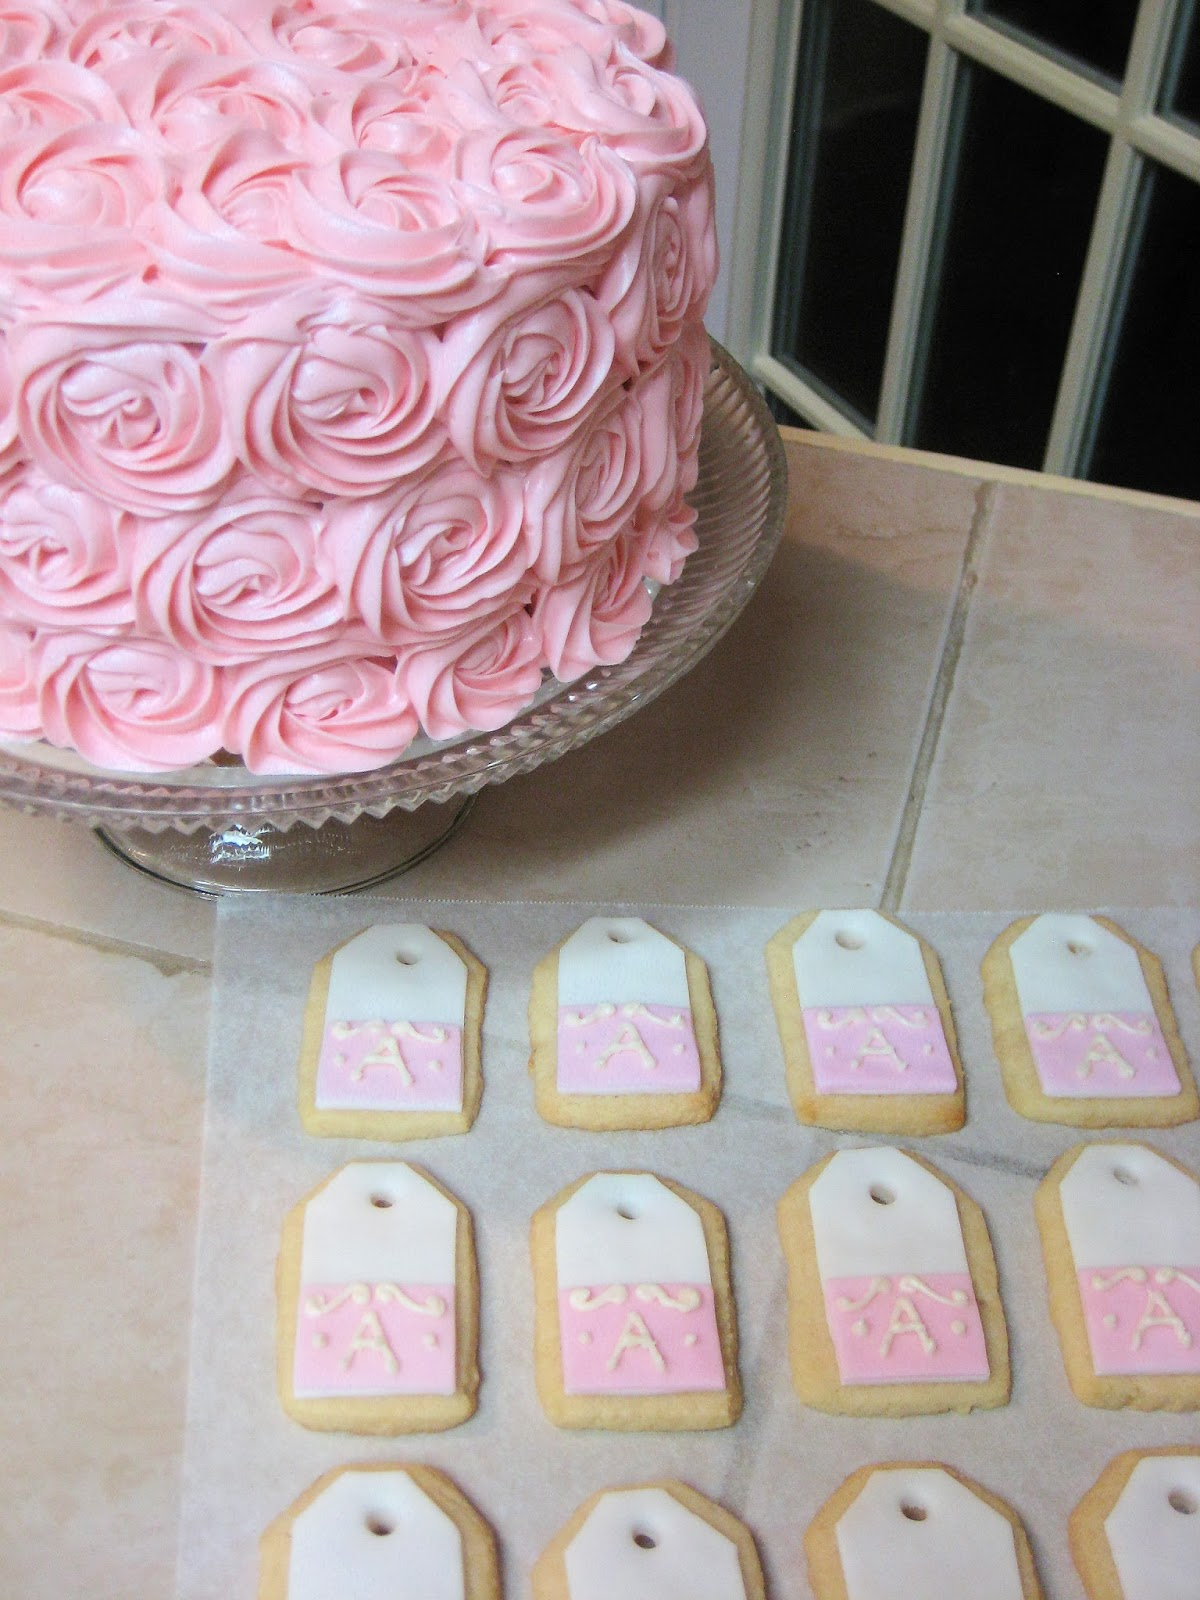 Shabby Chic Pink Rose Cake and Teabag Cookies Together - Close-Up 2